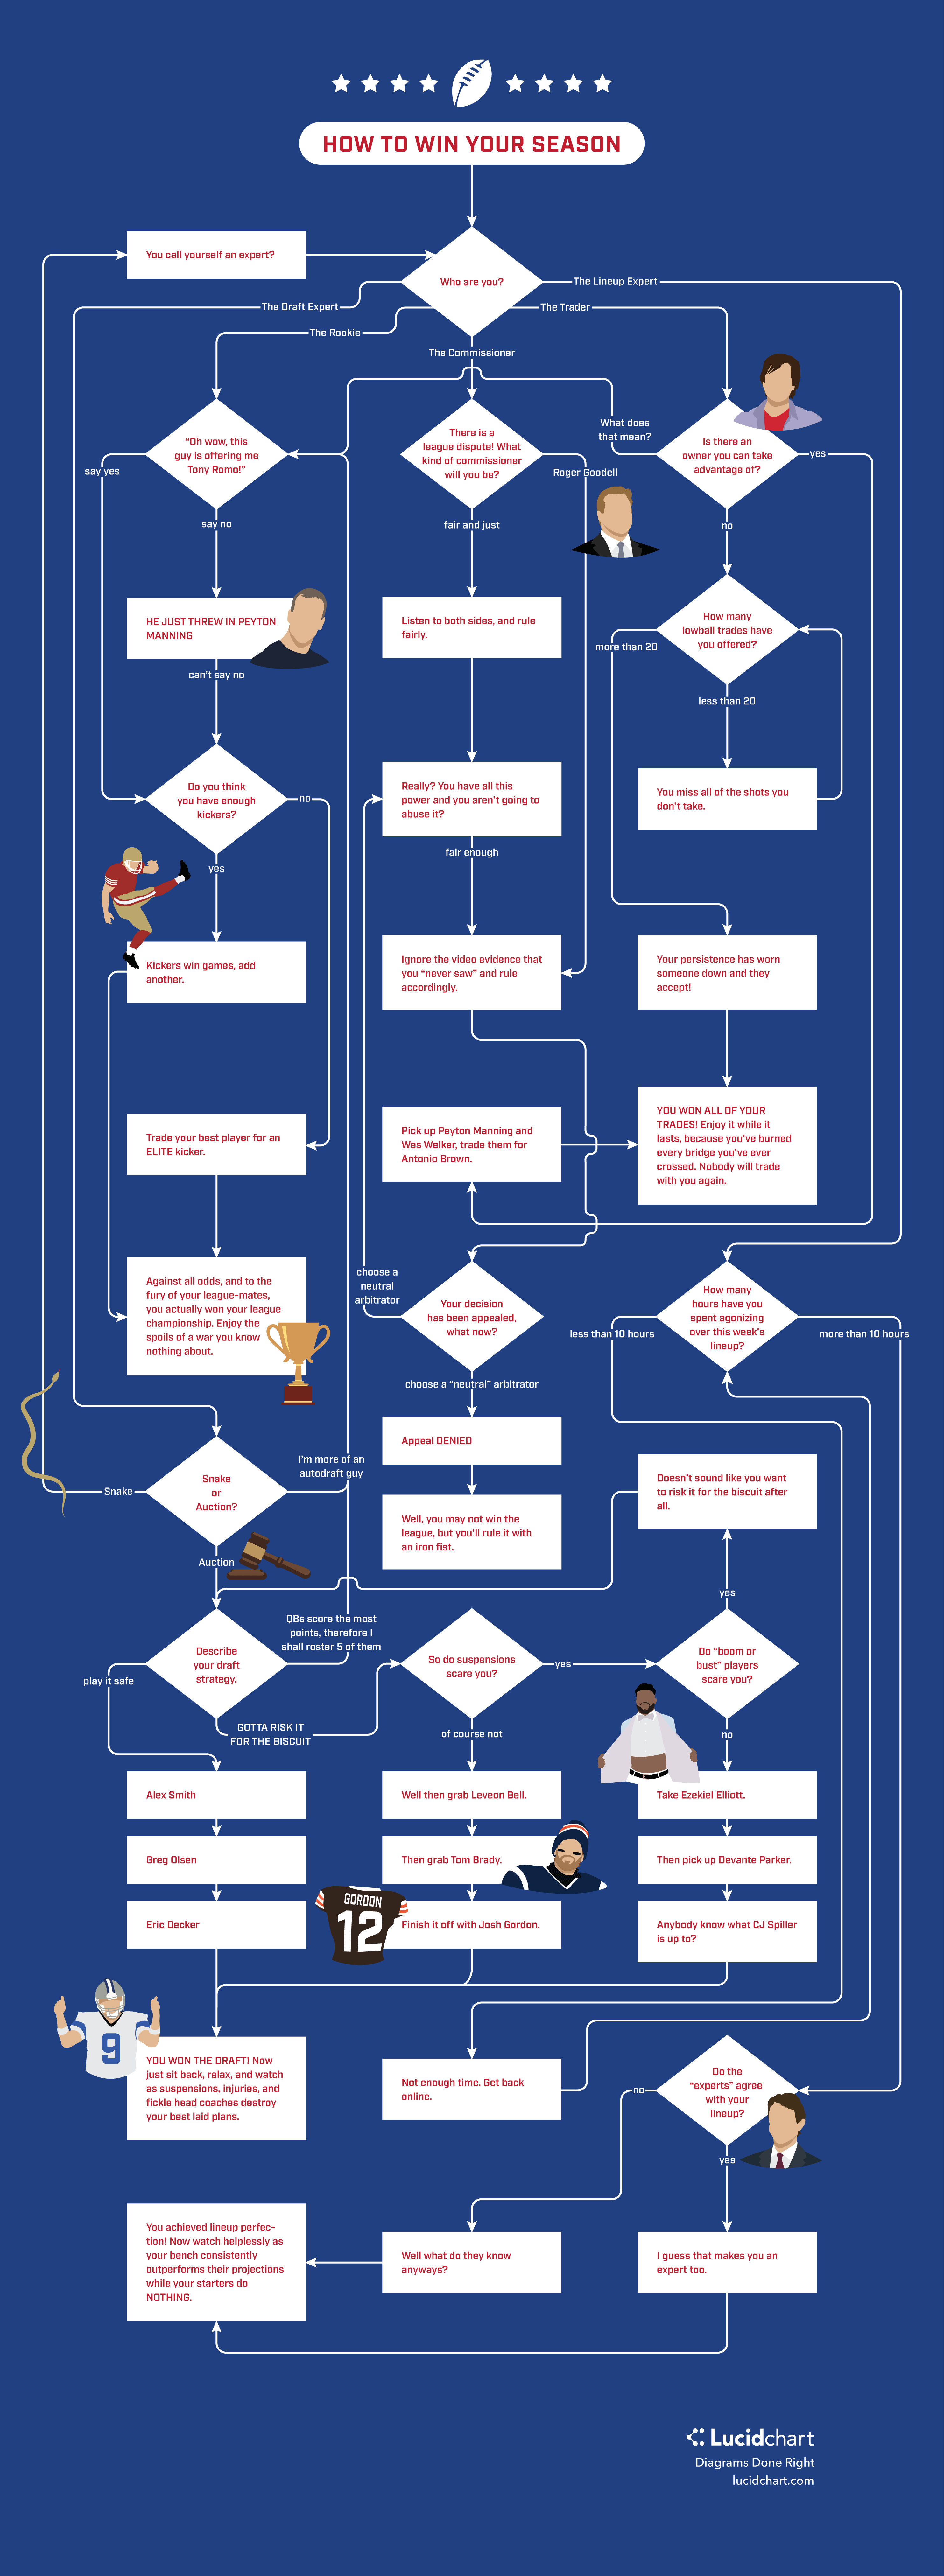 Fantasy Football Flowchart: How To Win Your League